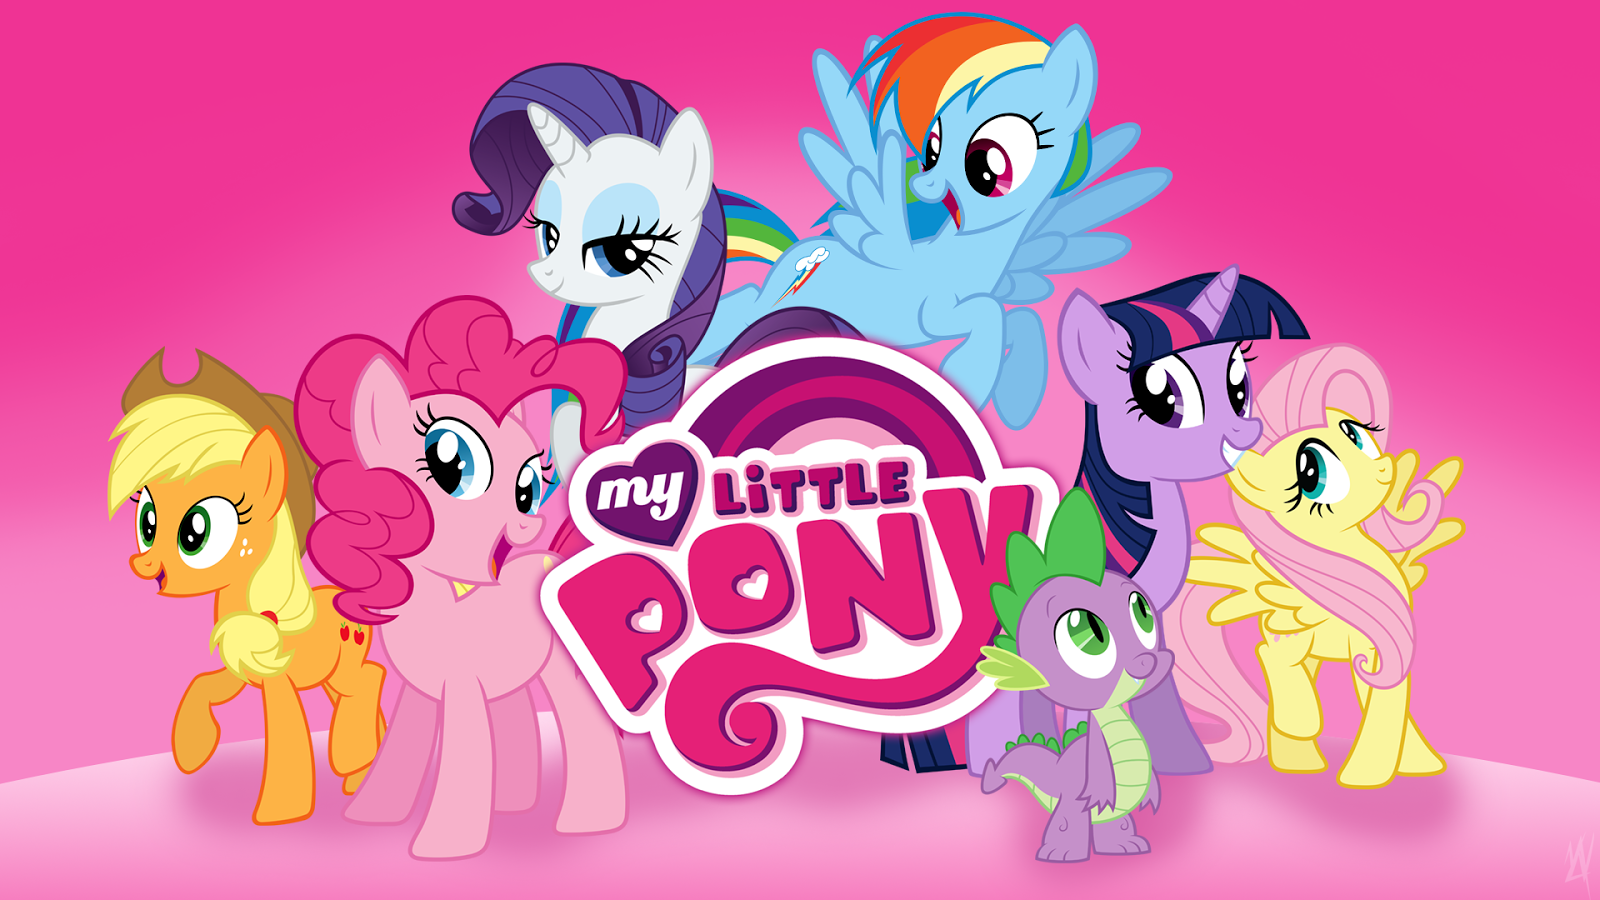 Image my little pony logo ponyville review - My little pony wikia ...